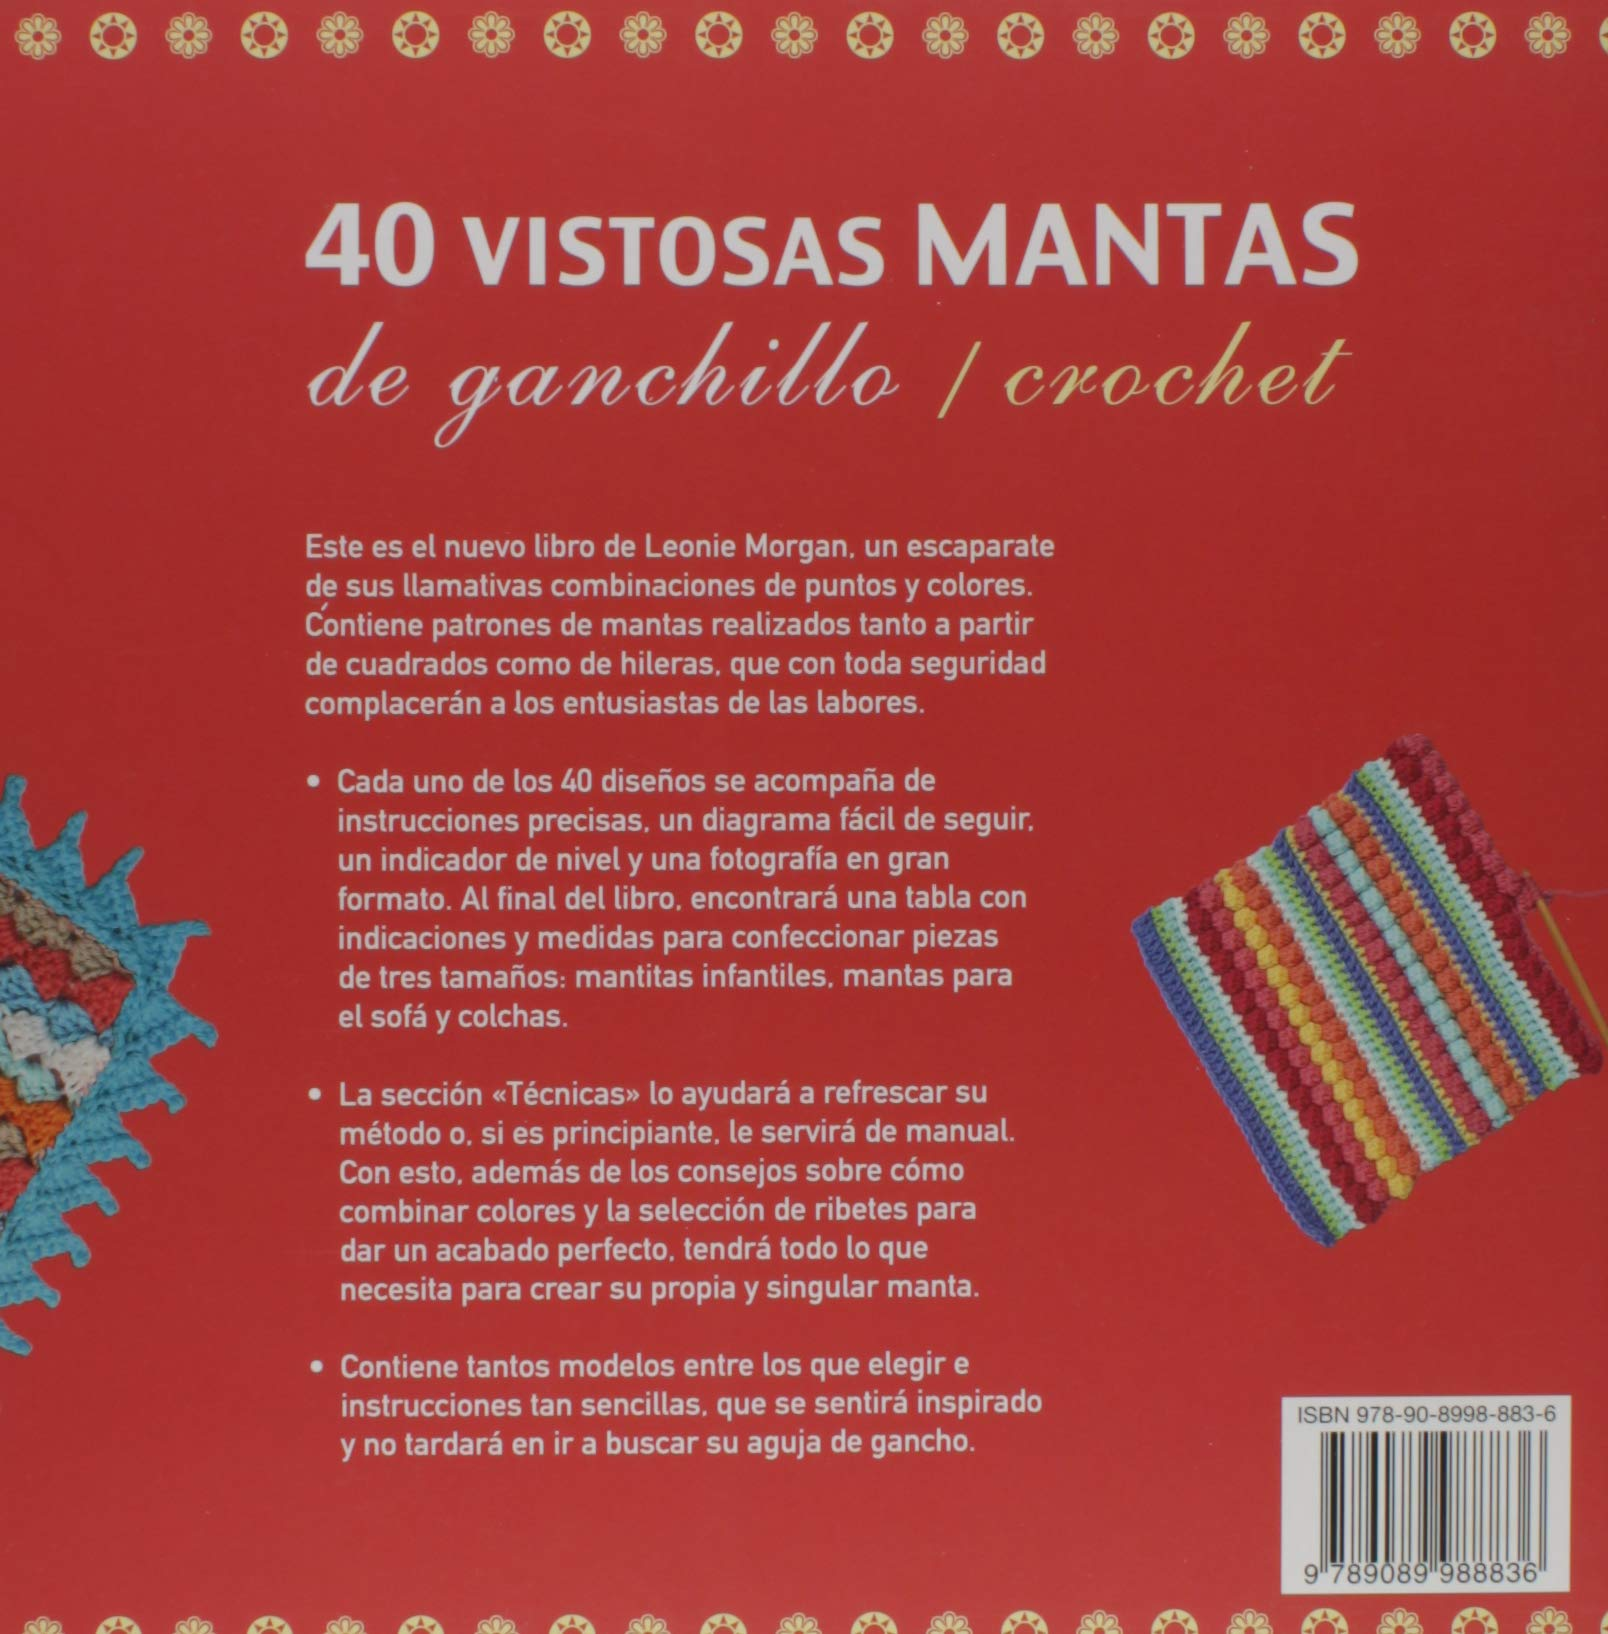 40 VISTOSAS MANTAS DE GANCHILLO/CROCHET: LEONIE MORGAN: 9789089988836: Amazon.com: Books